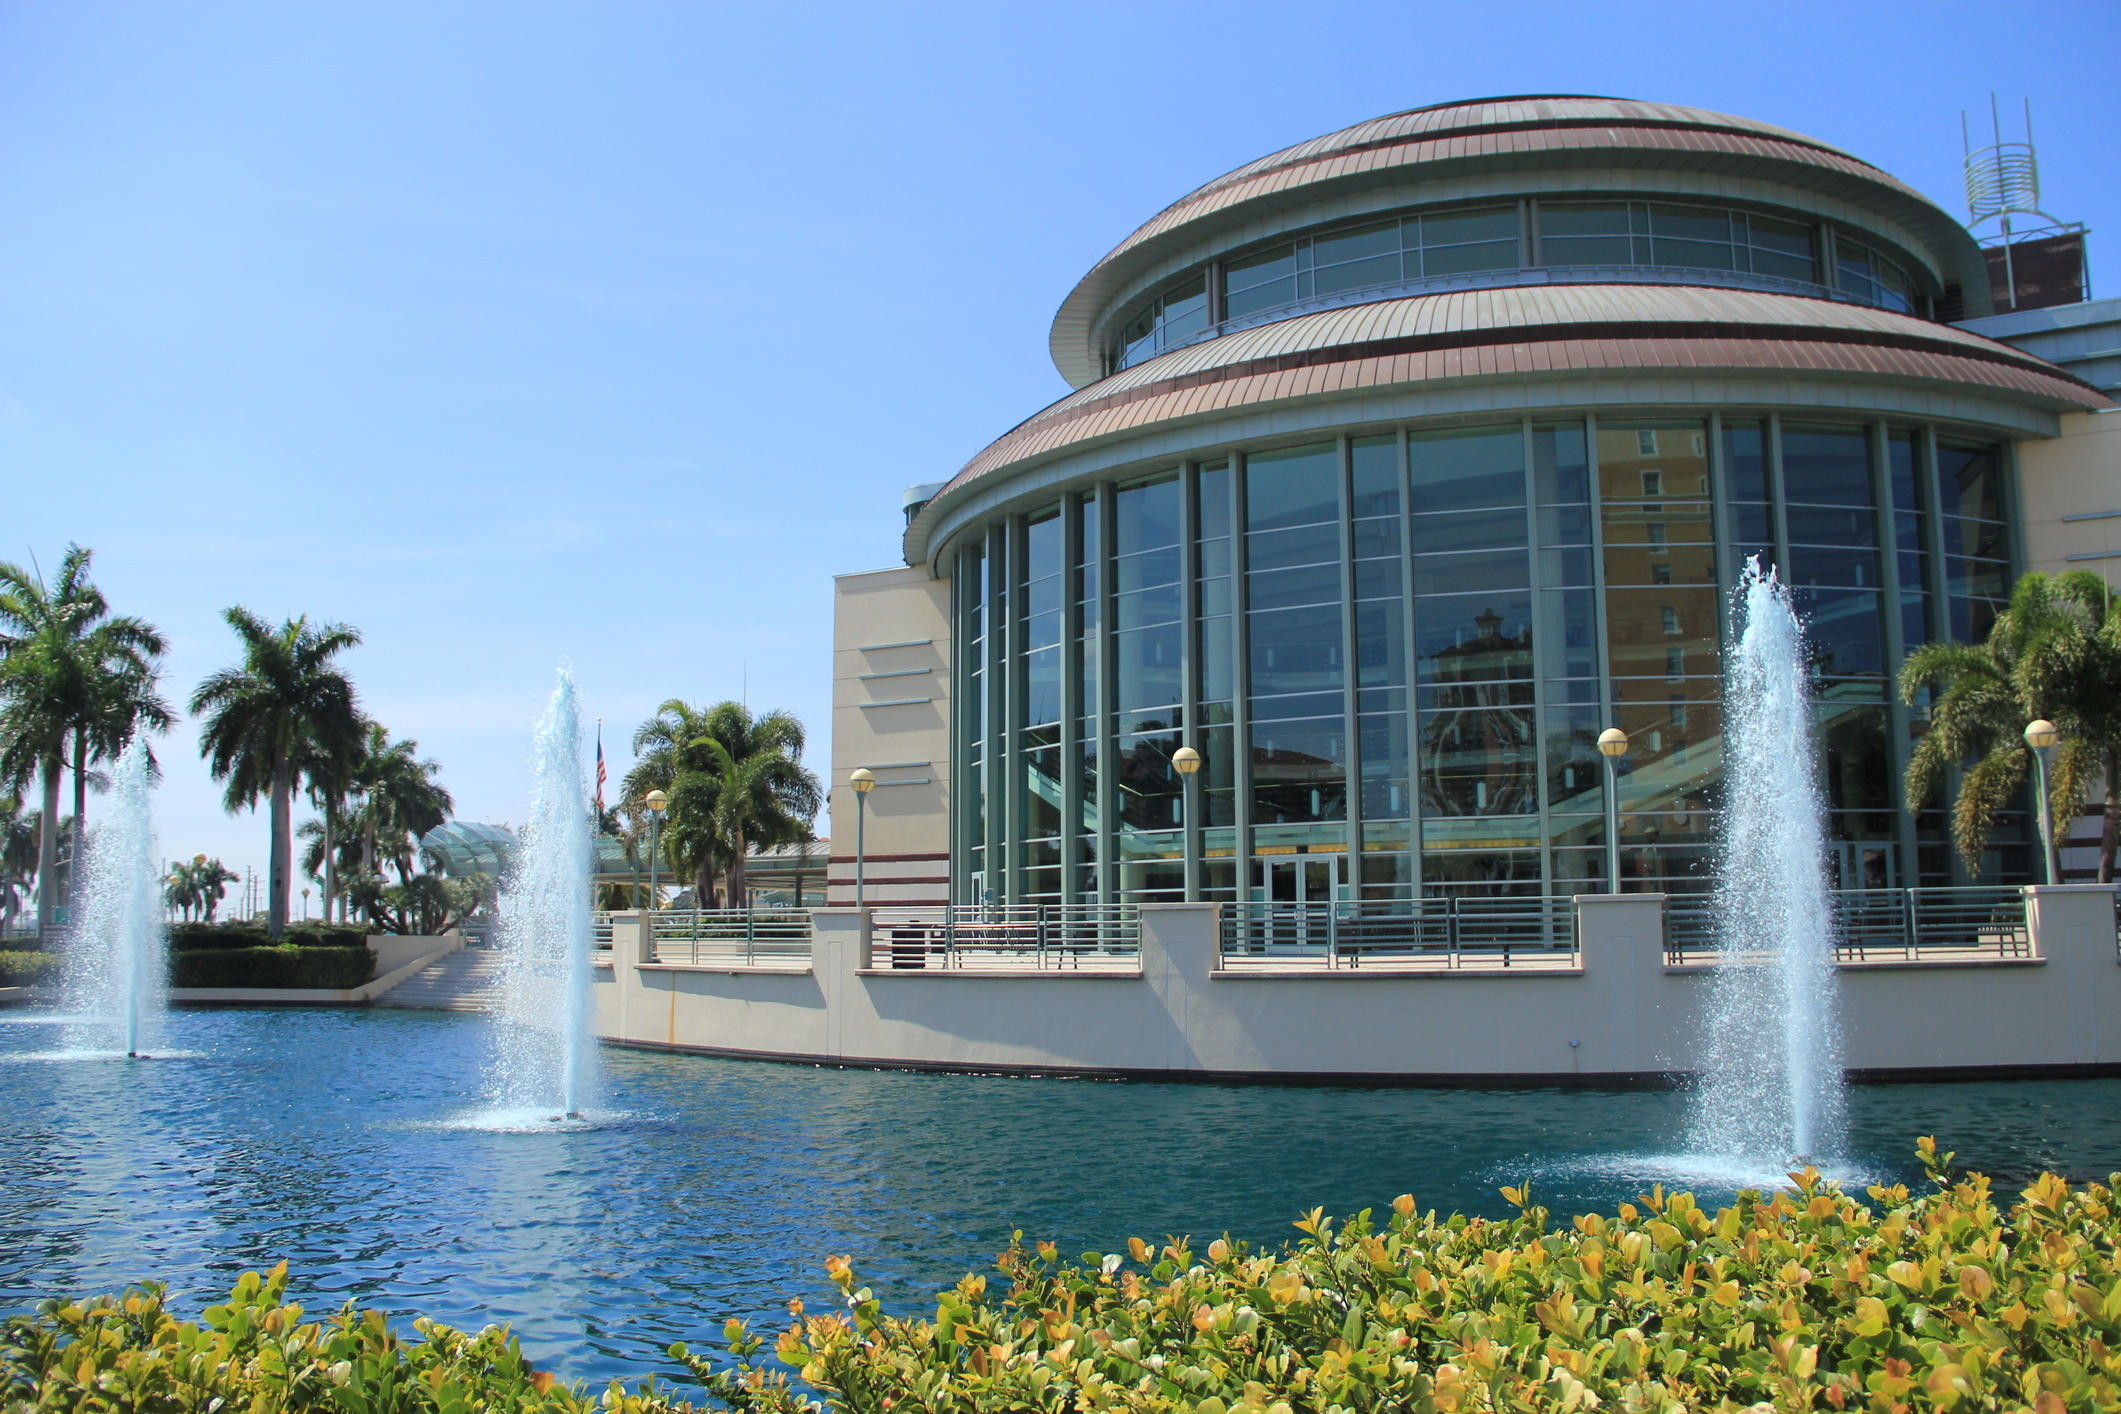 http://www.dreamstime.com/stock-photography-architecture-west-palm-beach-three-water-fountains-front-image30093862